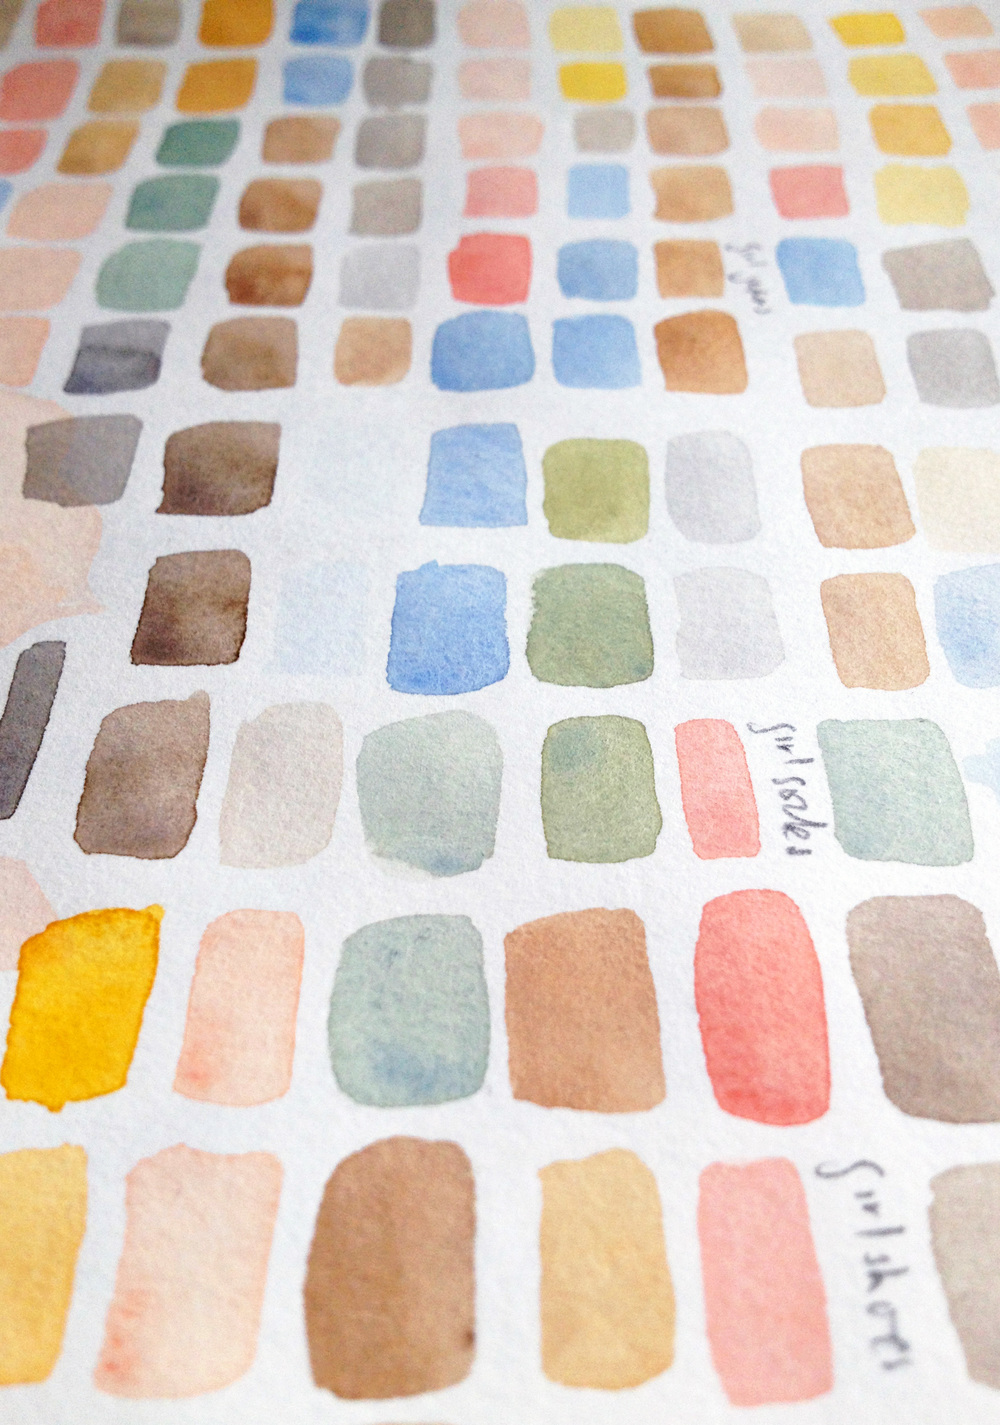 Ailsa_Burrows_Colour_Palette